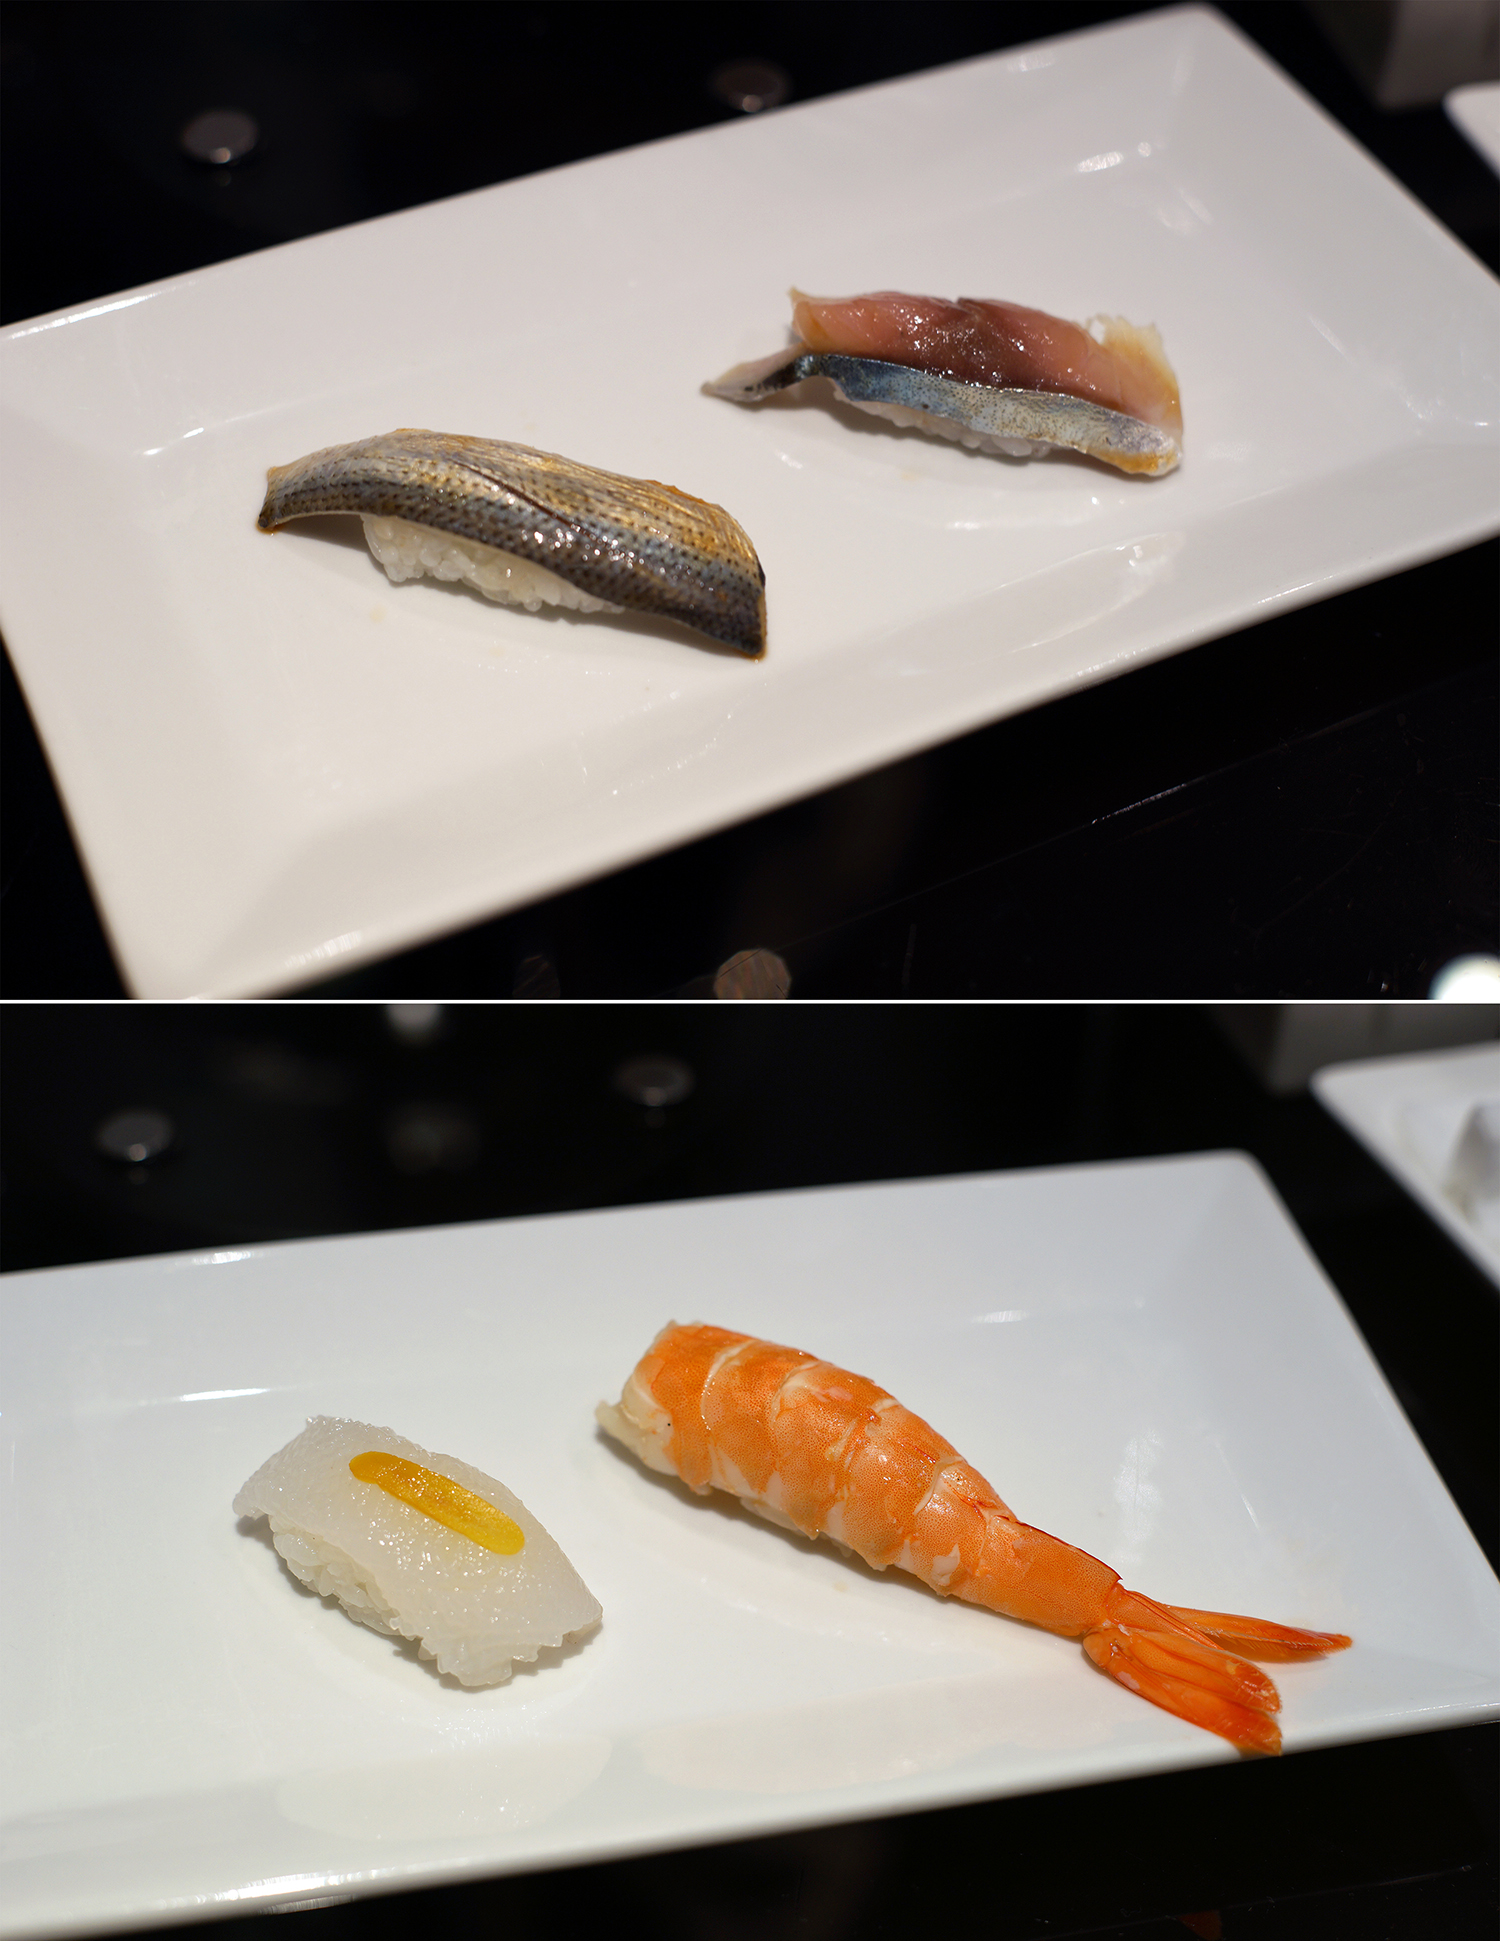 Top: Aji and 7 day aged aji with mustard  Bottom: Blue shrimp from New Caledonia